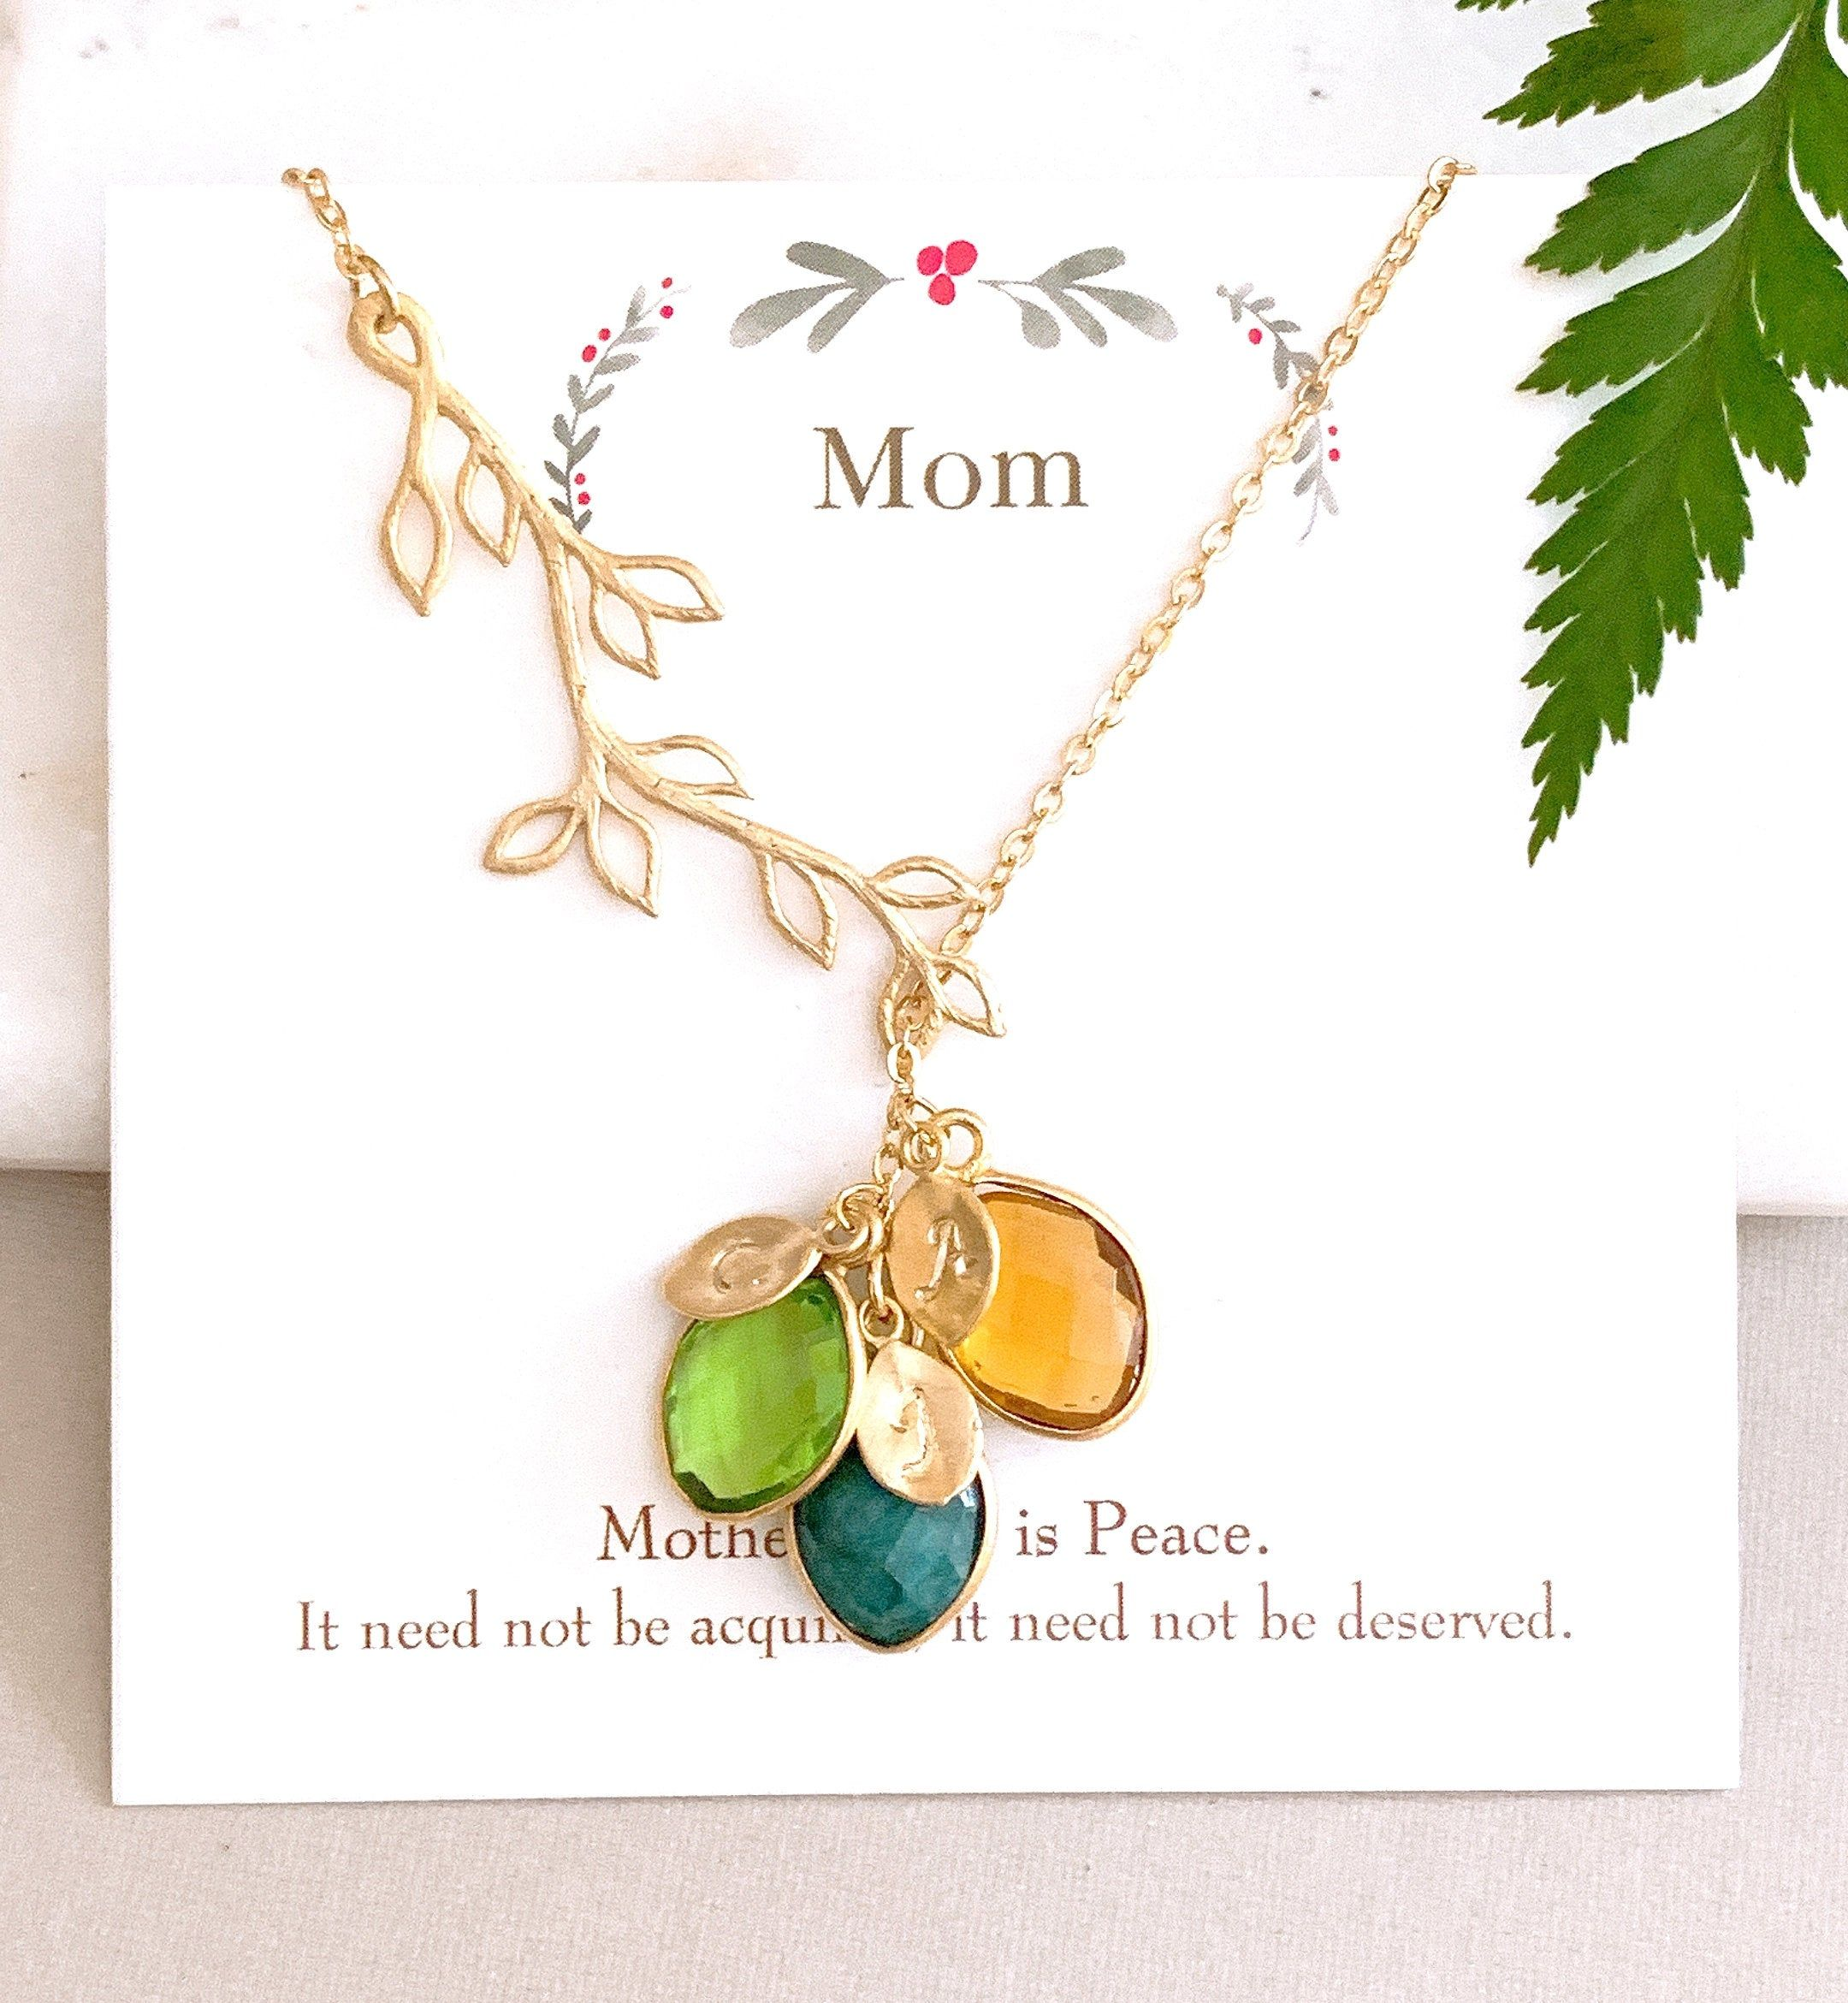 Birthstone Necklace For Mom Grandmother Grandma Jewelry Etsy Personalized Mother Gifts Christmas Gift Jewelry Christmas Necklace Gift